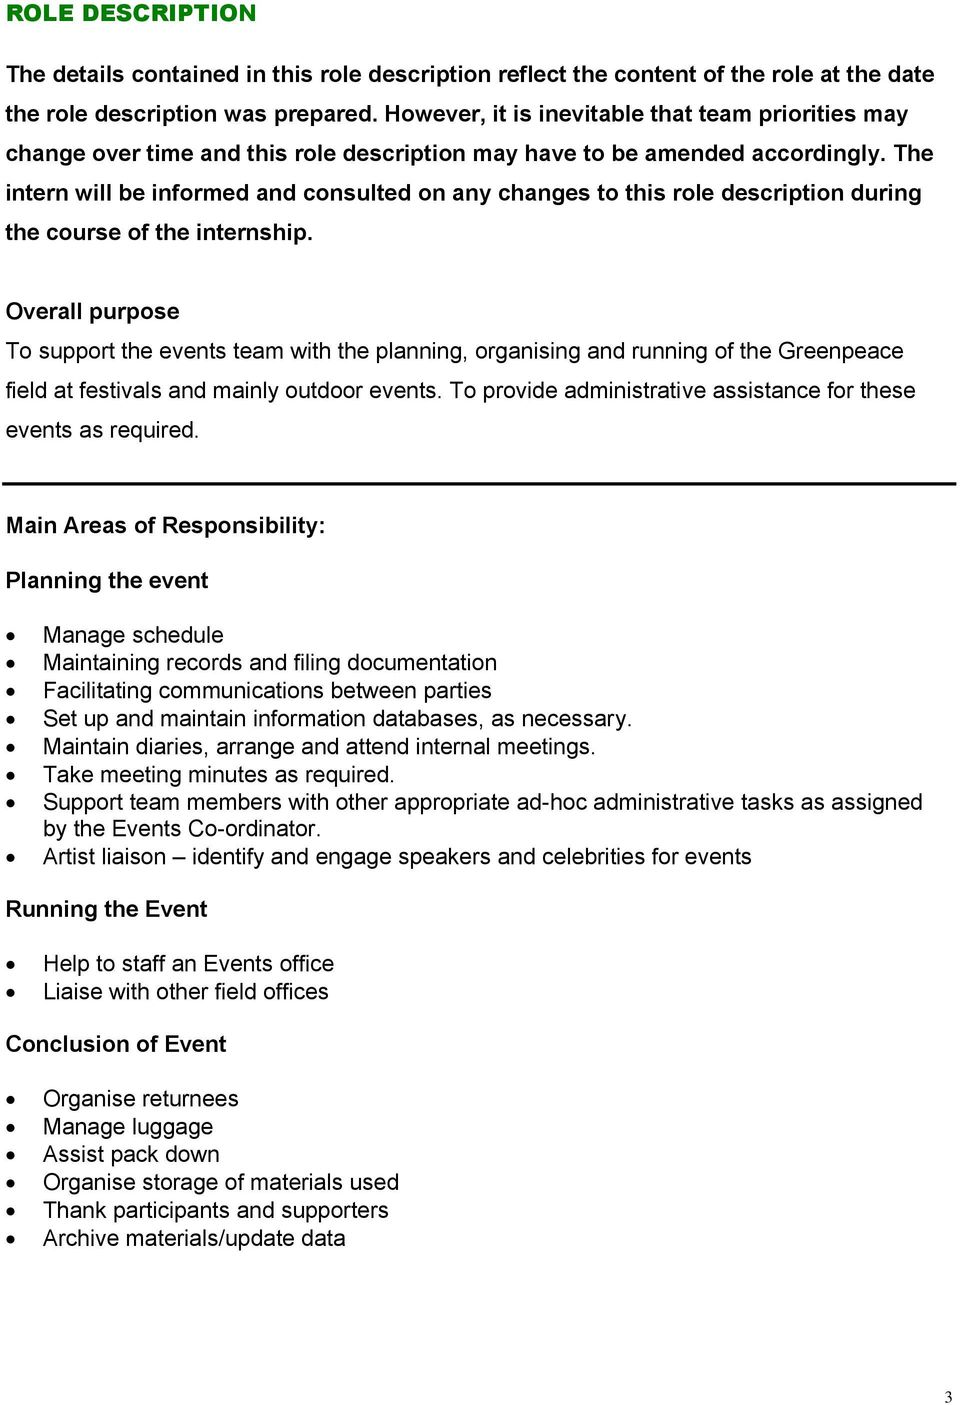 The intern will be informed and consulted on any changes to this role description during the course of the internship.